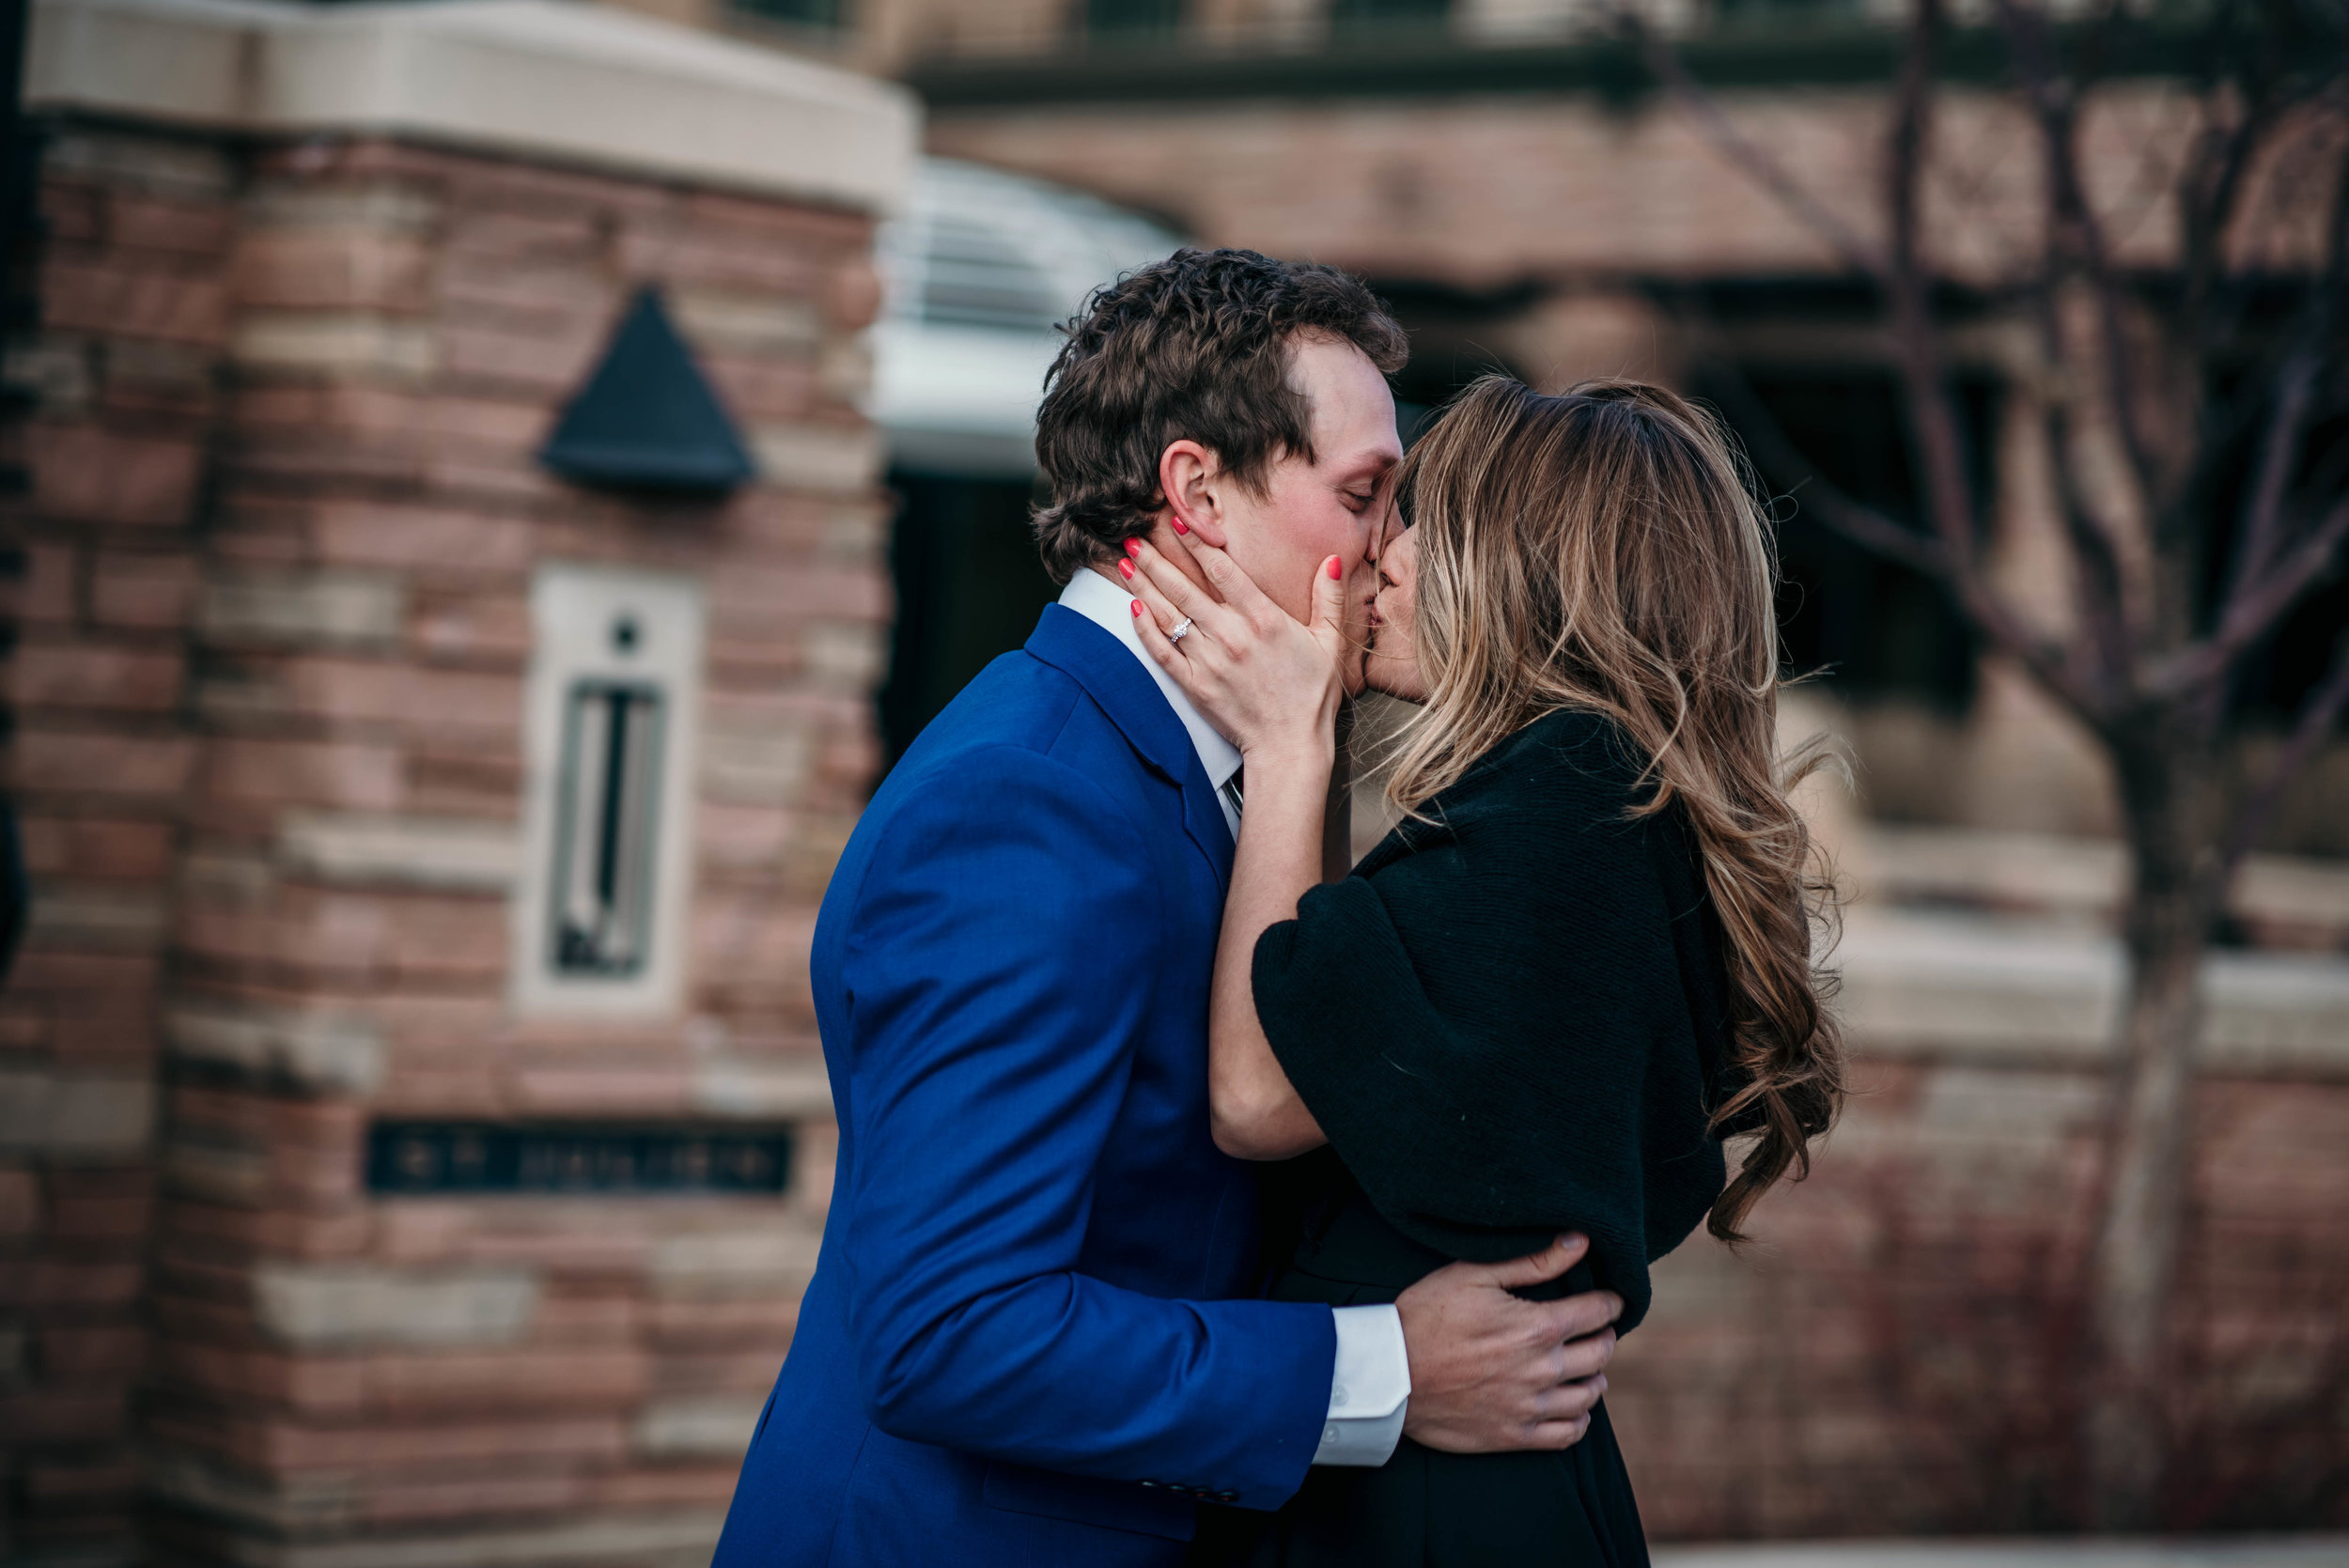 colorado_proposal_photographer_0346.jpg